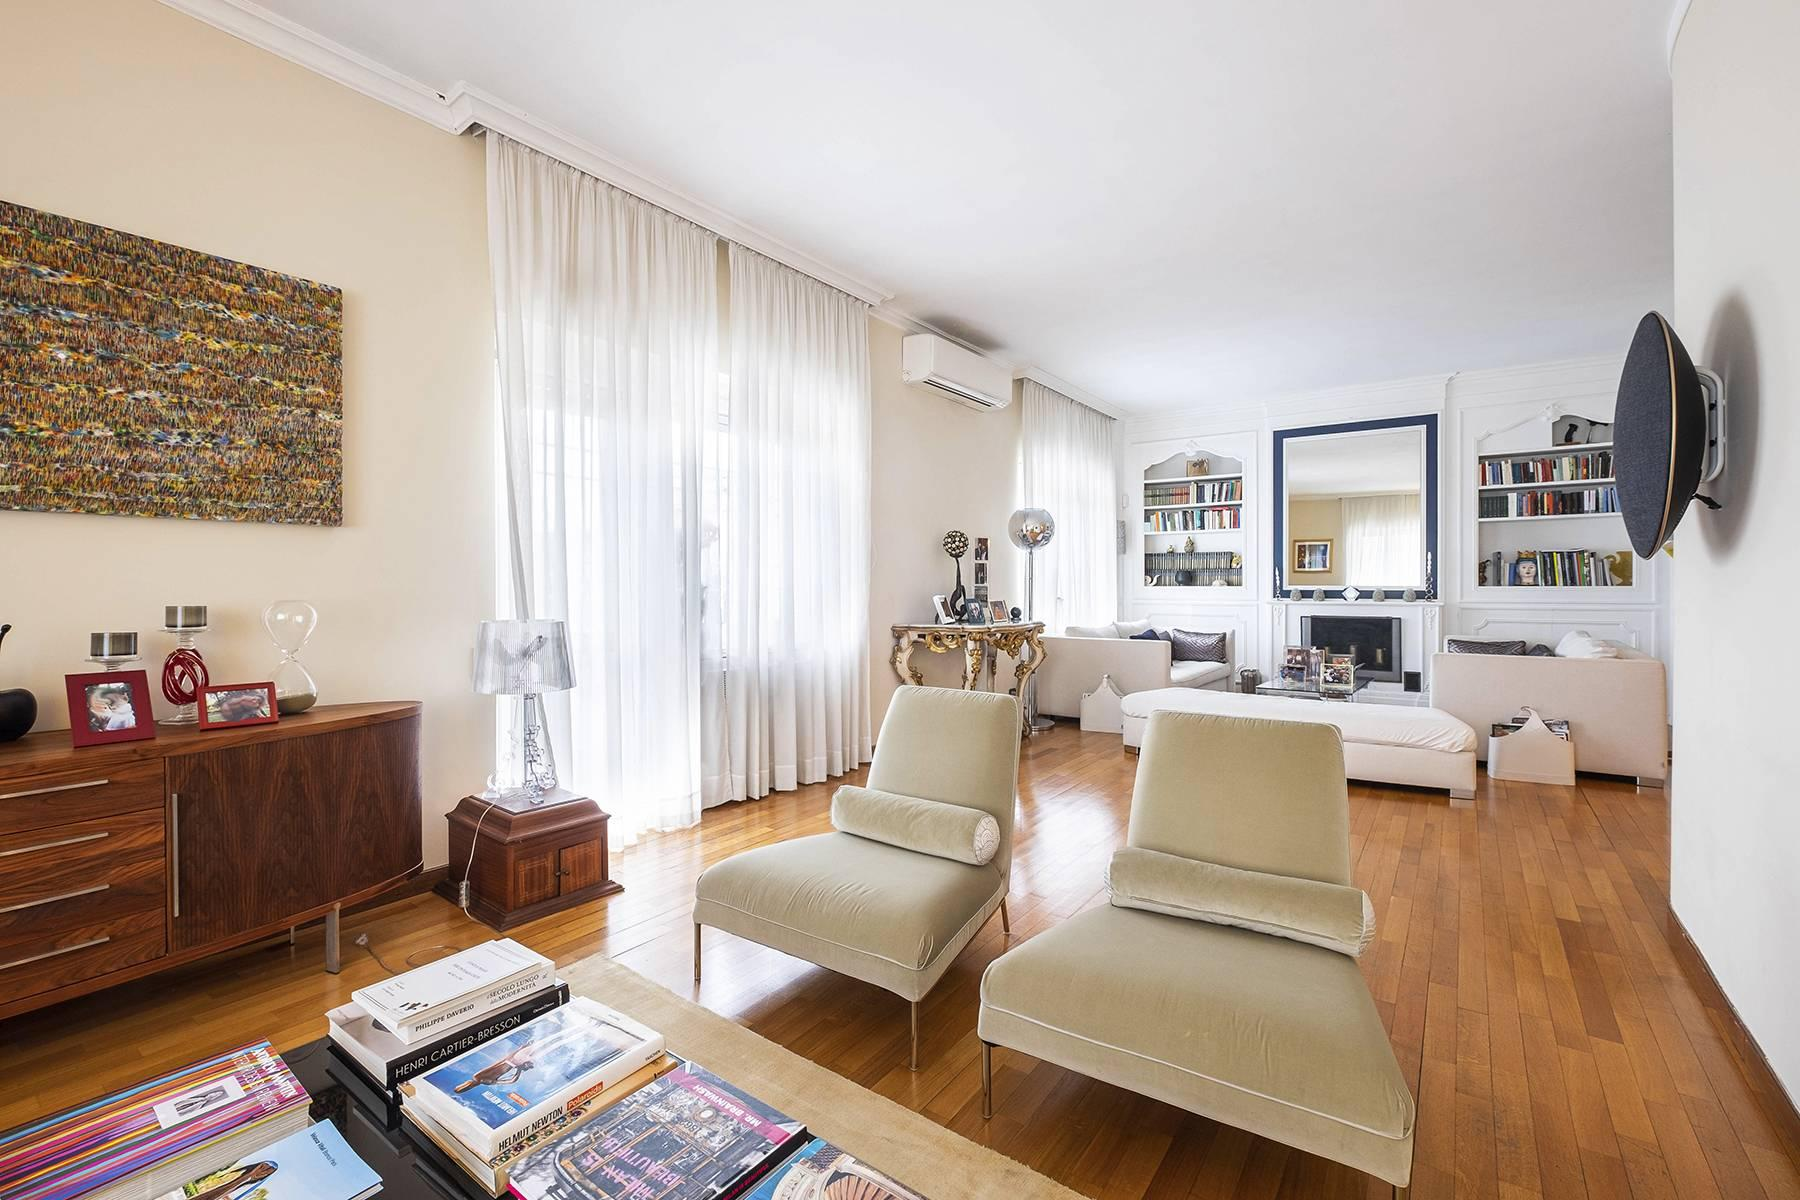 Modern penthouse with stunning 70 sqm terrace a stone's throw from Villa Borghese - 5